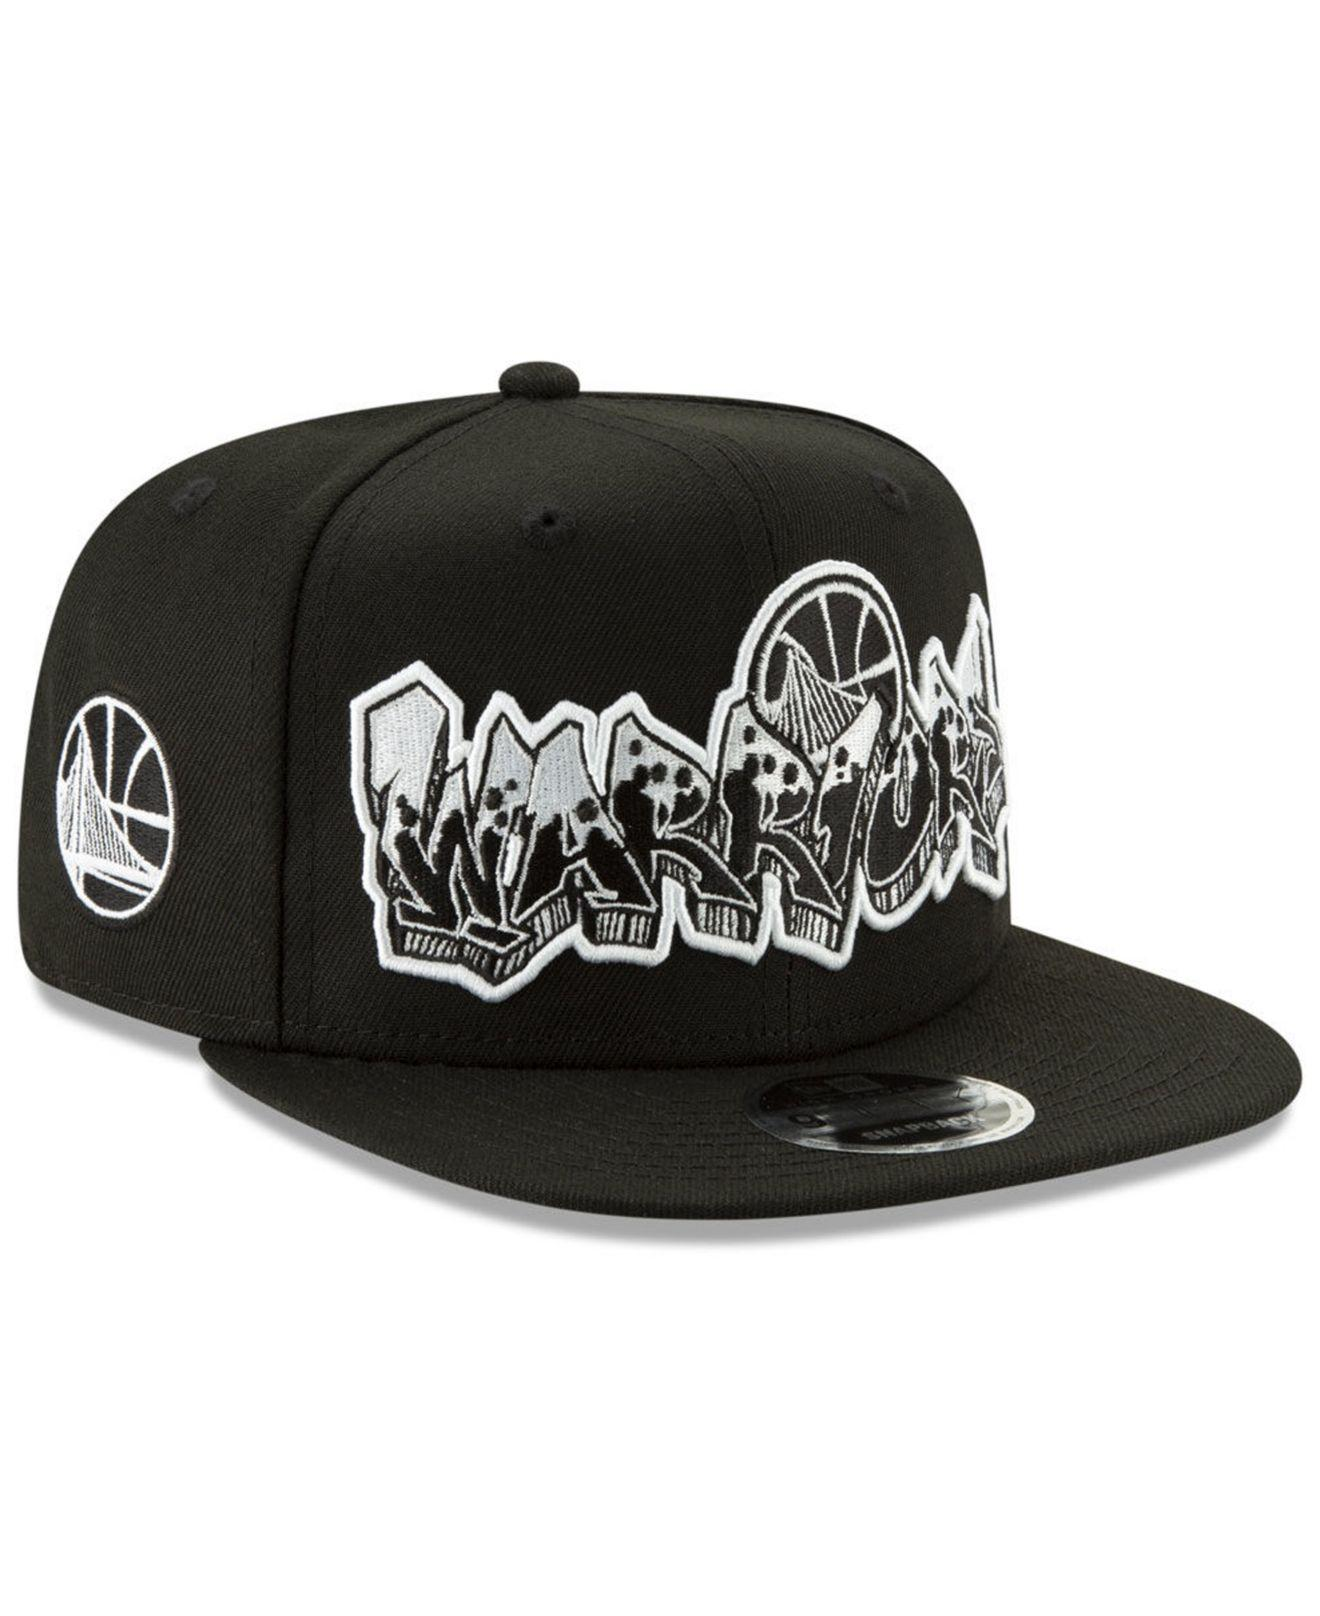 low cost 779e7 9b1d0 ... official store ktz. mens golden state warriors retroword black white  9fifty snapback cap fcdb0 8855e